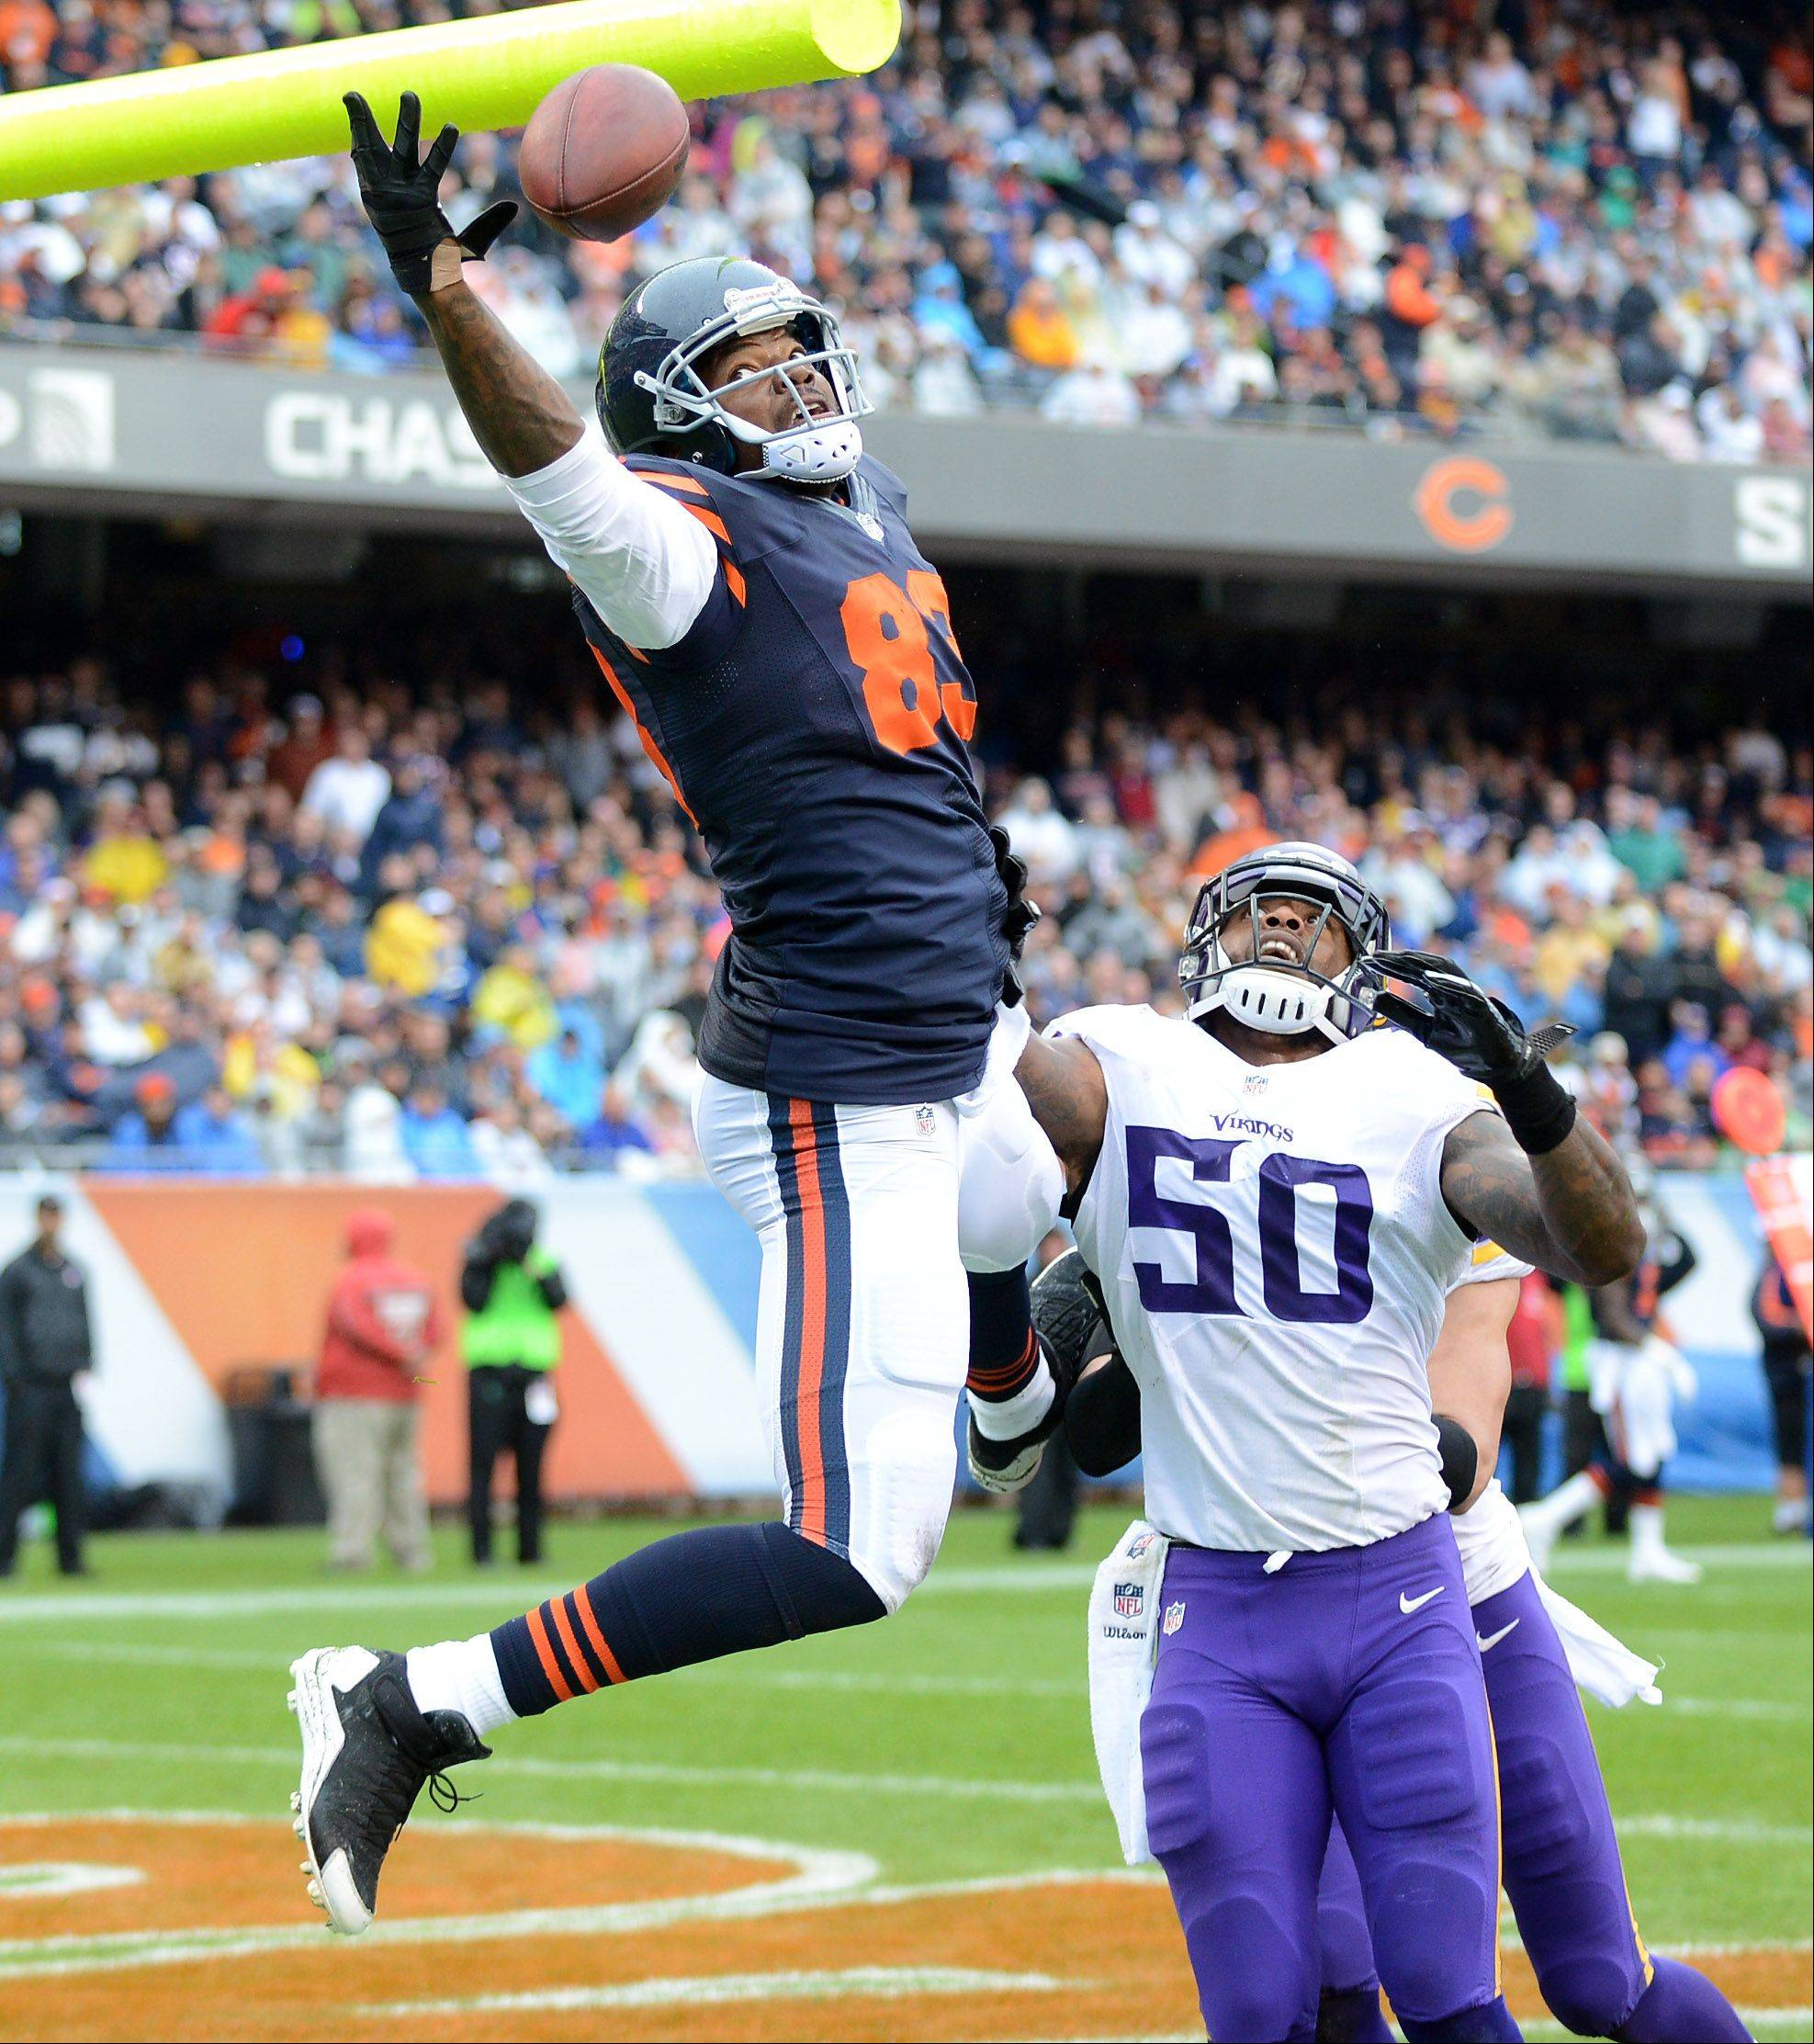 Chicago Bears tight end Martellus Bennett (83) stretches but can't come up with a catch in the end zone during Sunday's game at Soldier Field in Chicago.